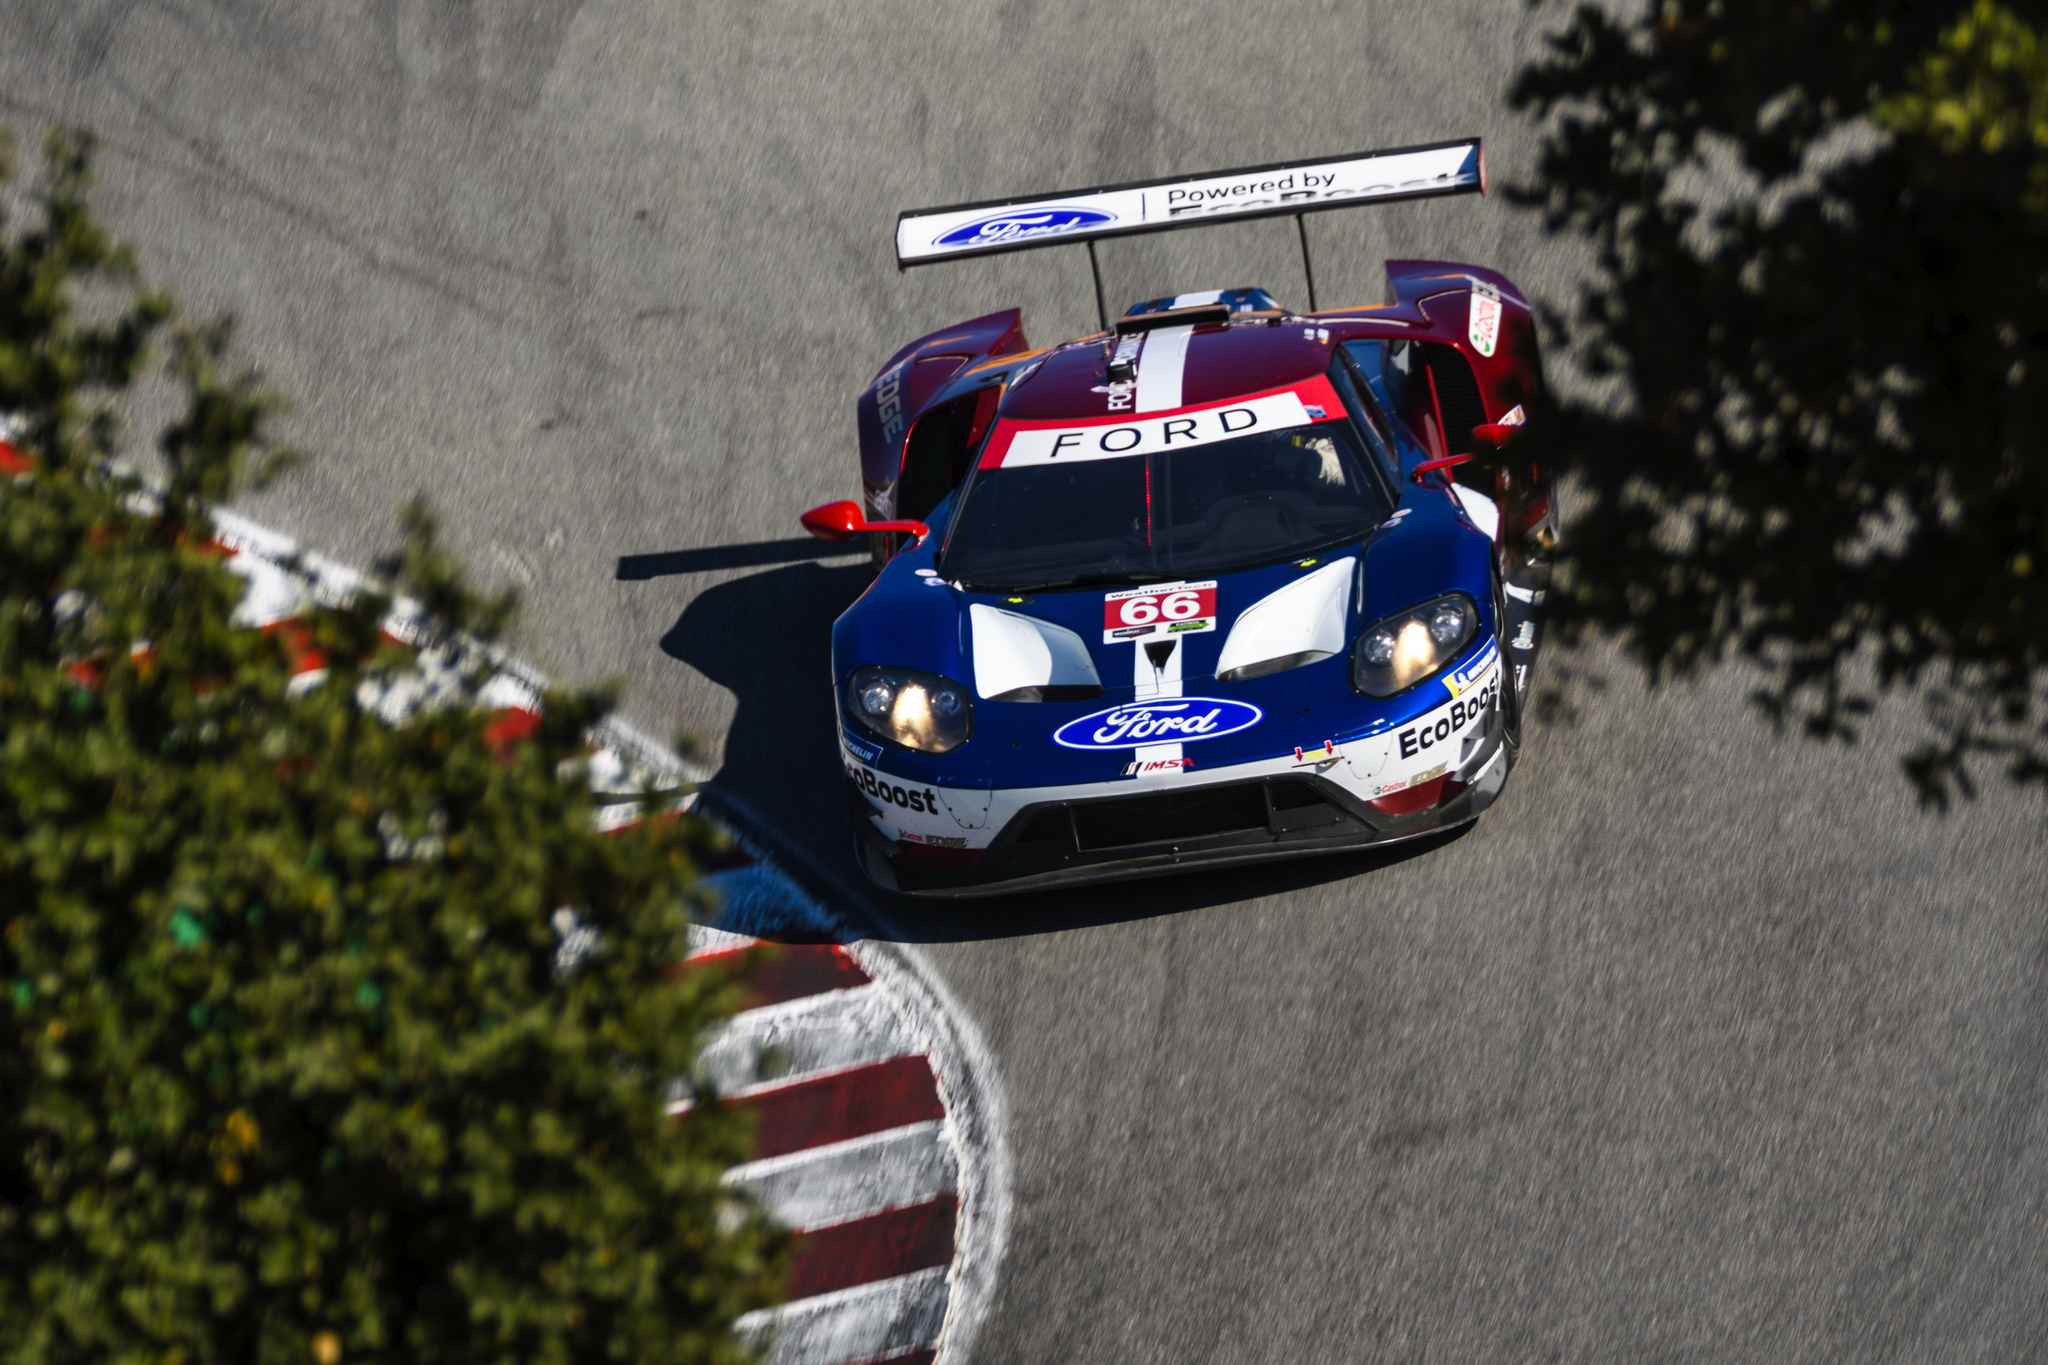 Ford Chip Ganassi Racing Just Misses Pole at Laguna Seca, Will Start Second and Fourth